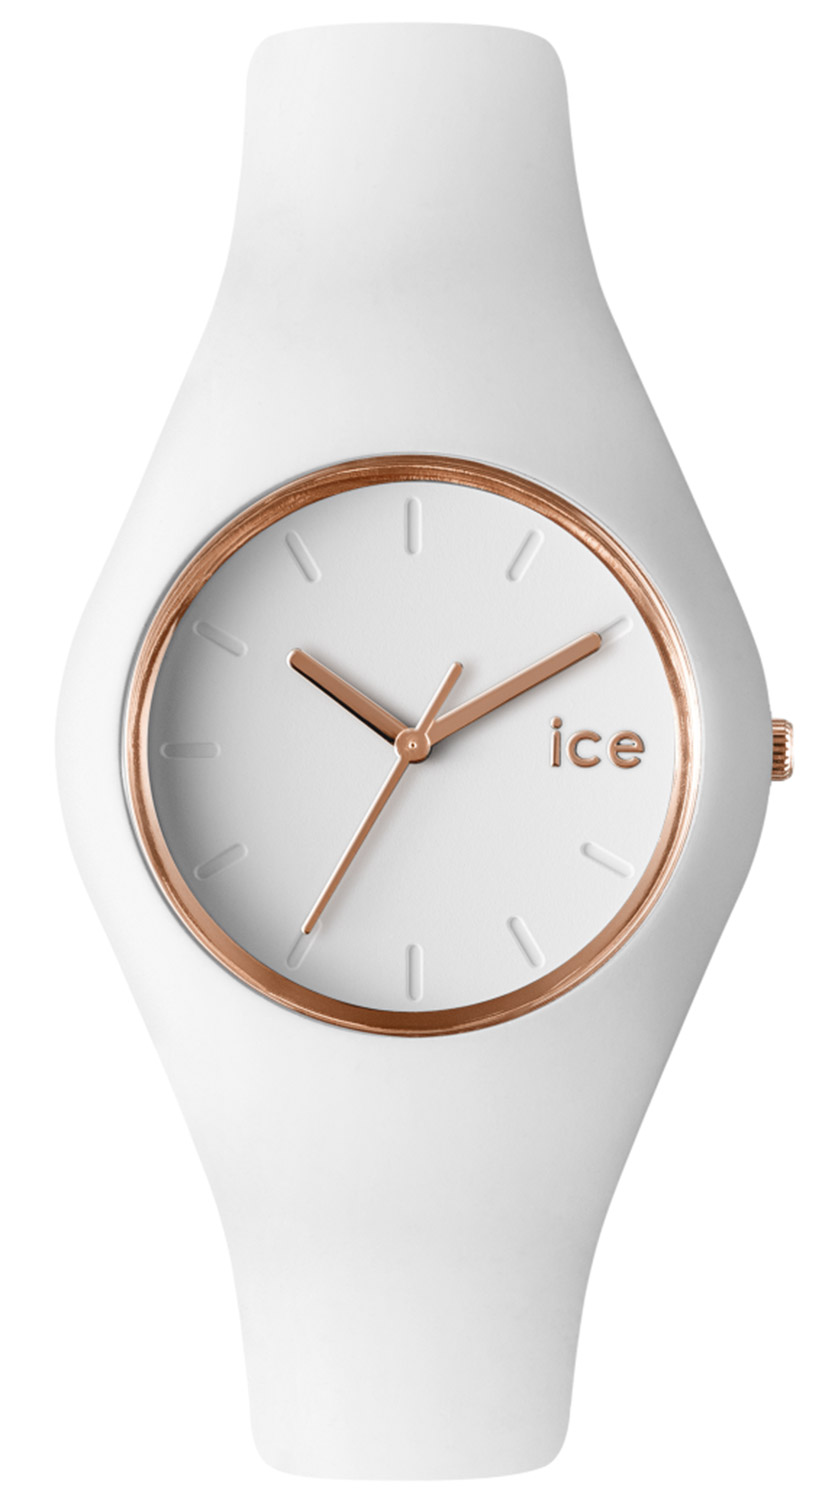 bei Uhrcenter: Ice-Watch 000977 Glam White Rose-Gold Damenuhr - Damenuhr